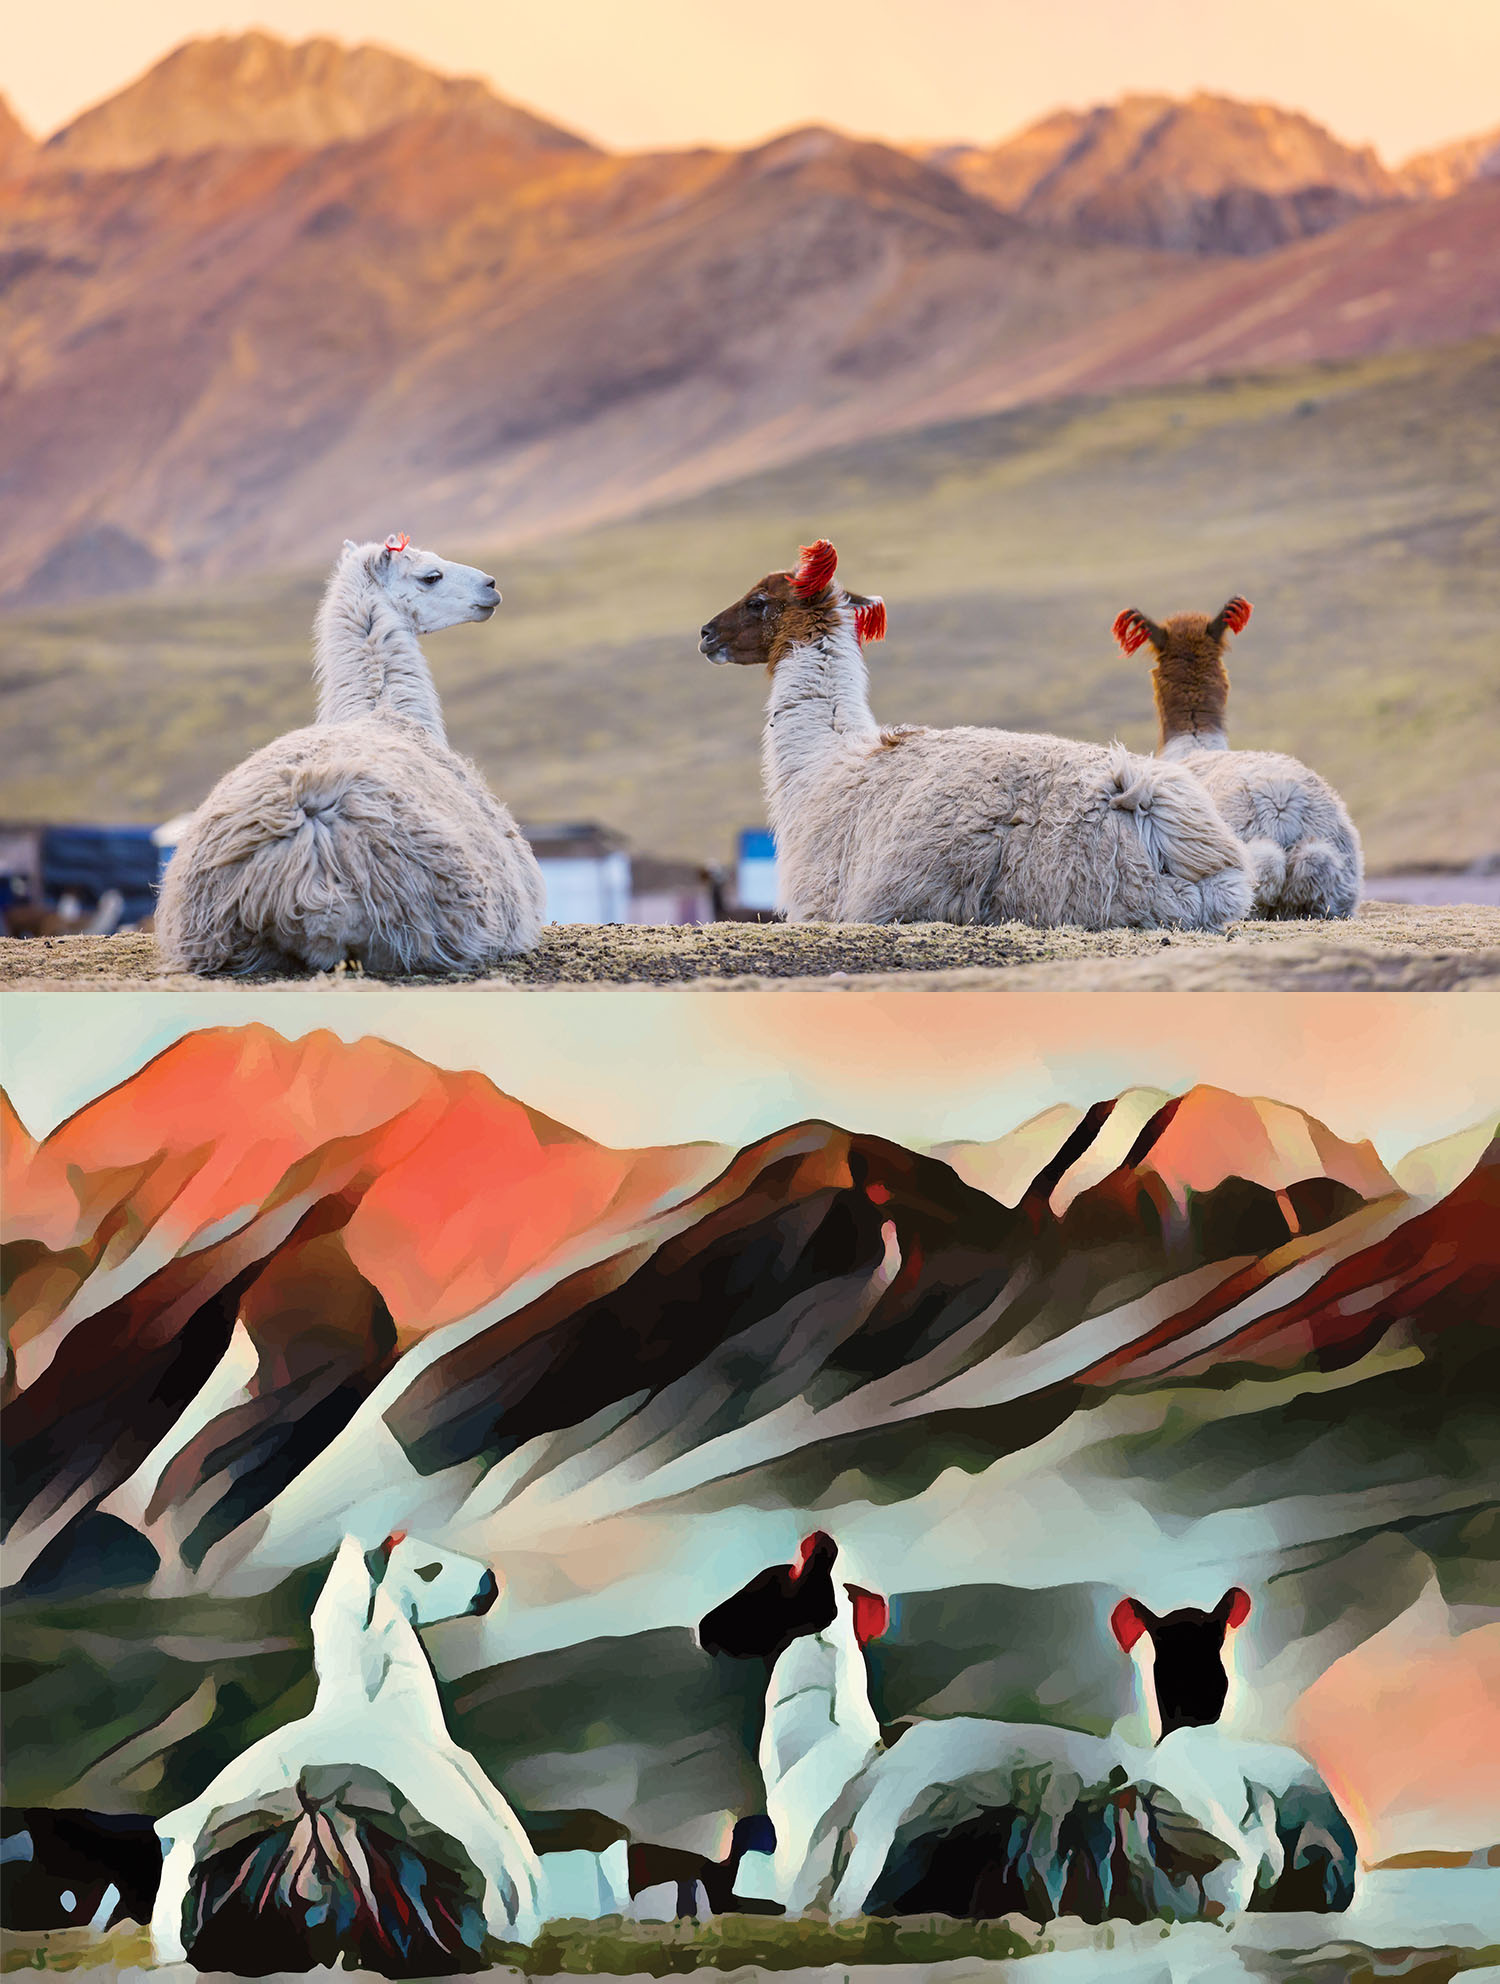 Before and after stylized image of three llamas lying in front of a mountain